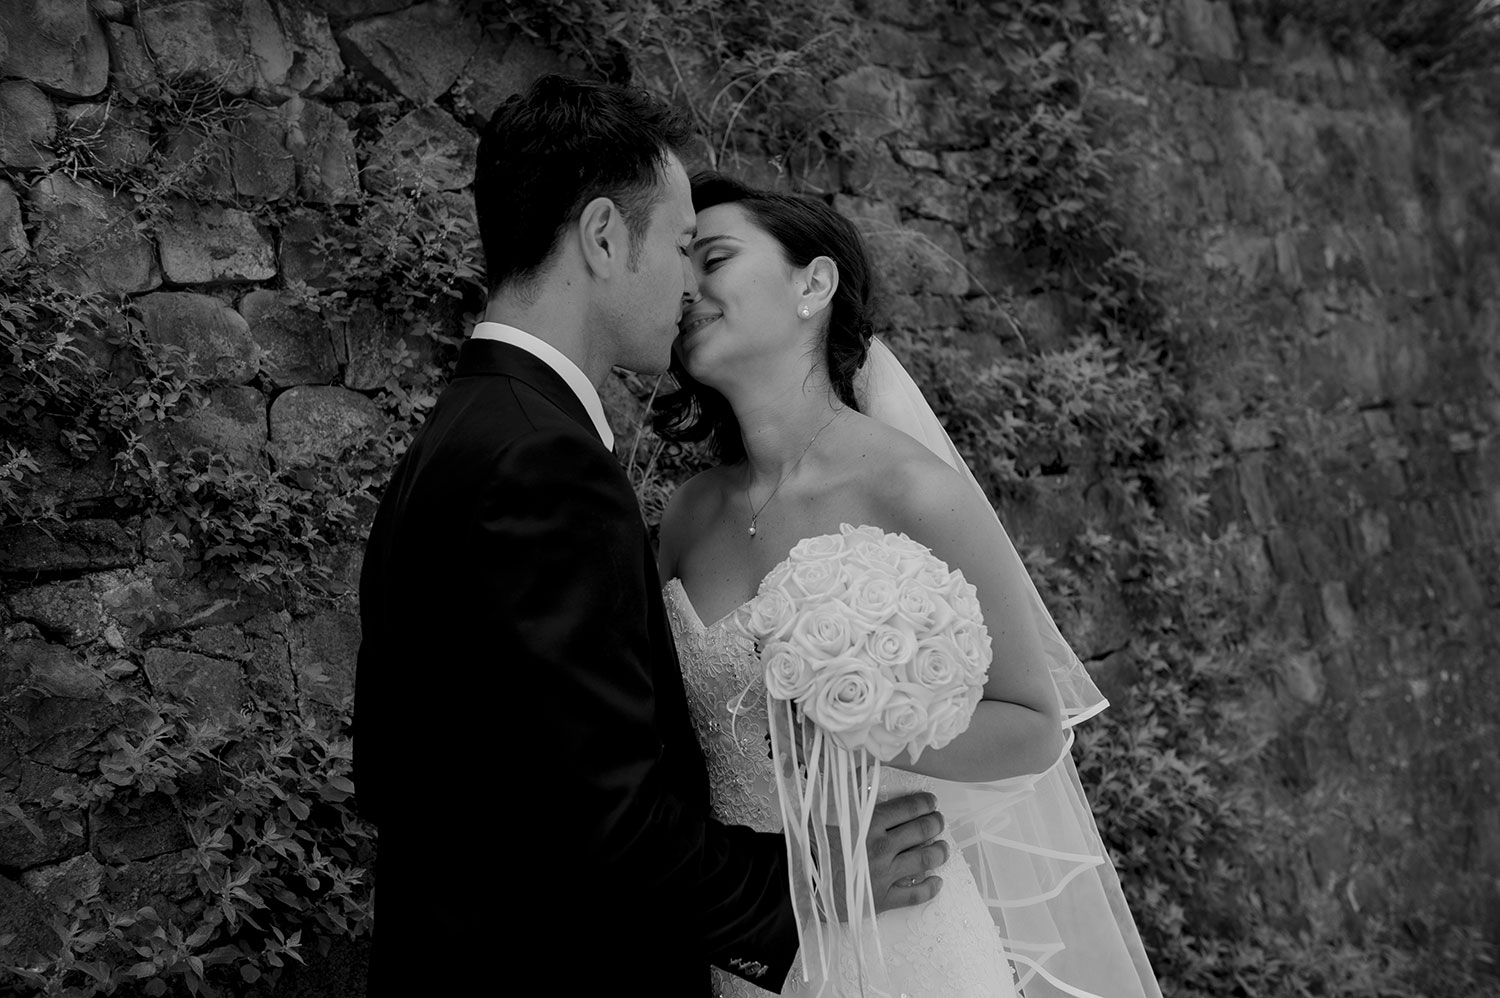 ivano-di-maria-photographer-wedding-emmanuela-andrea-12